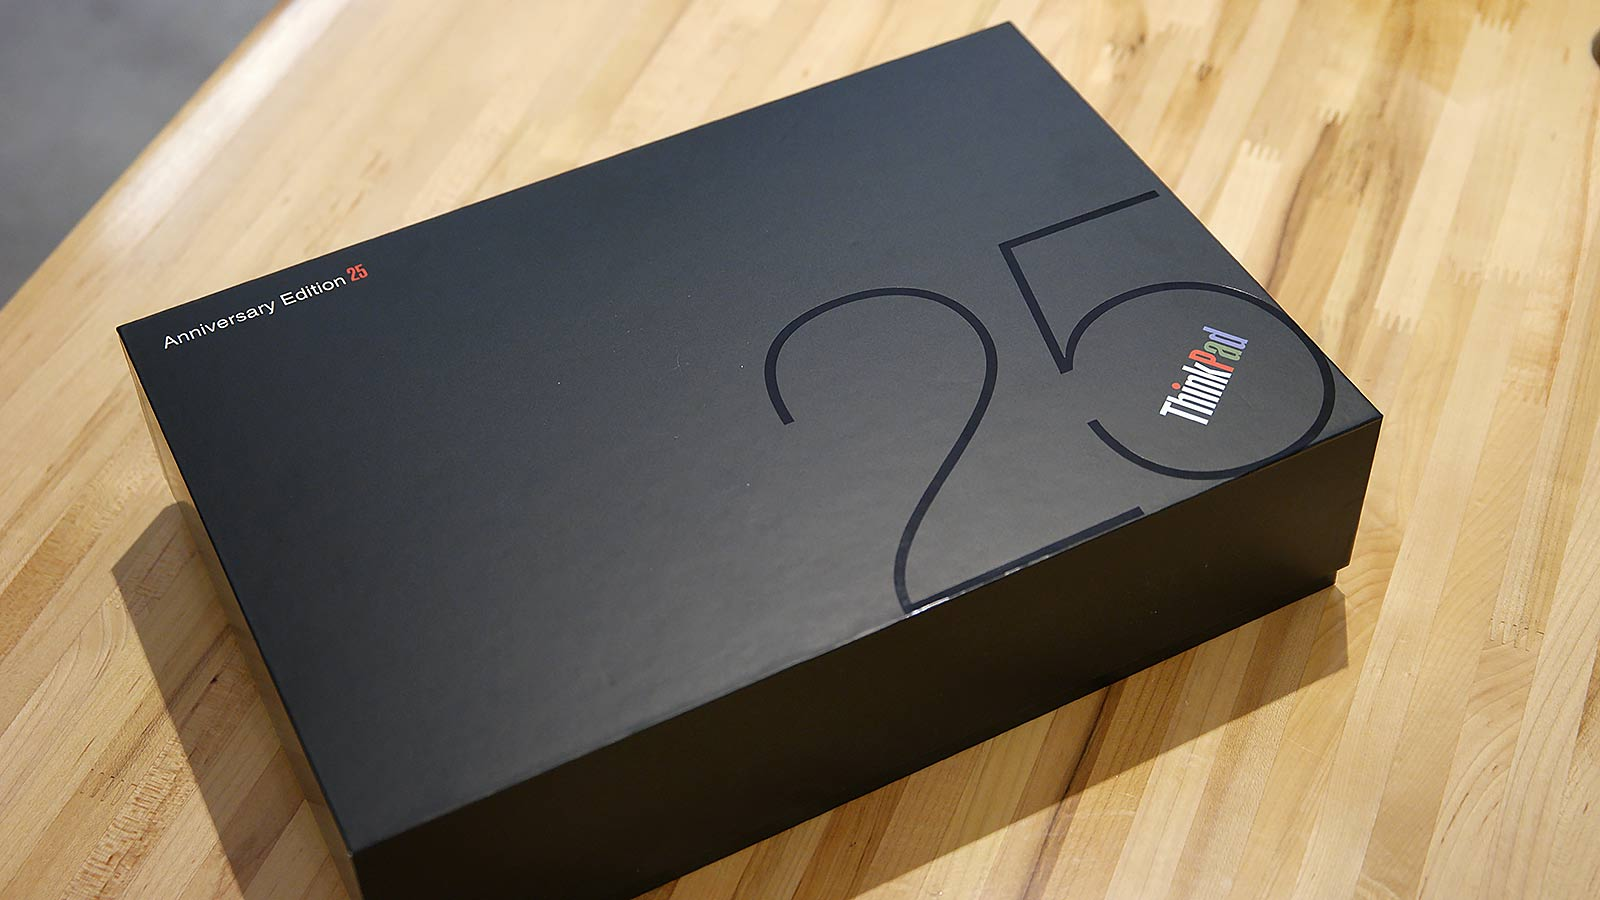 The box for the ThinkPad 25 might be the best thing about the whole package.